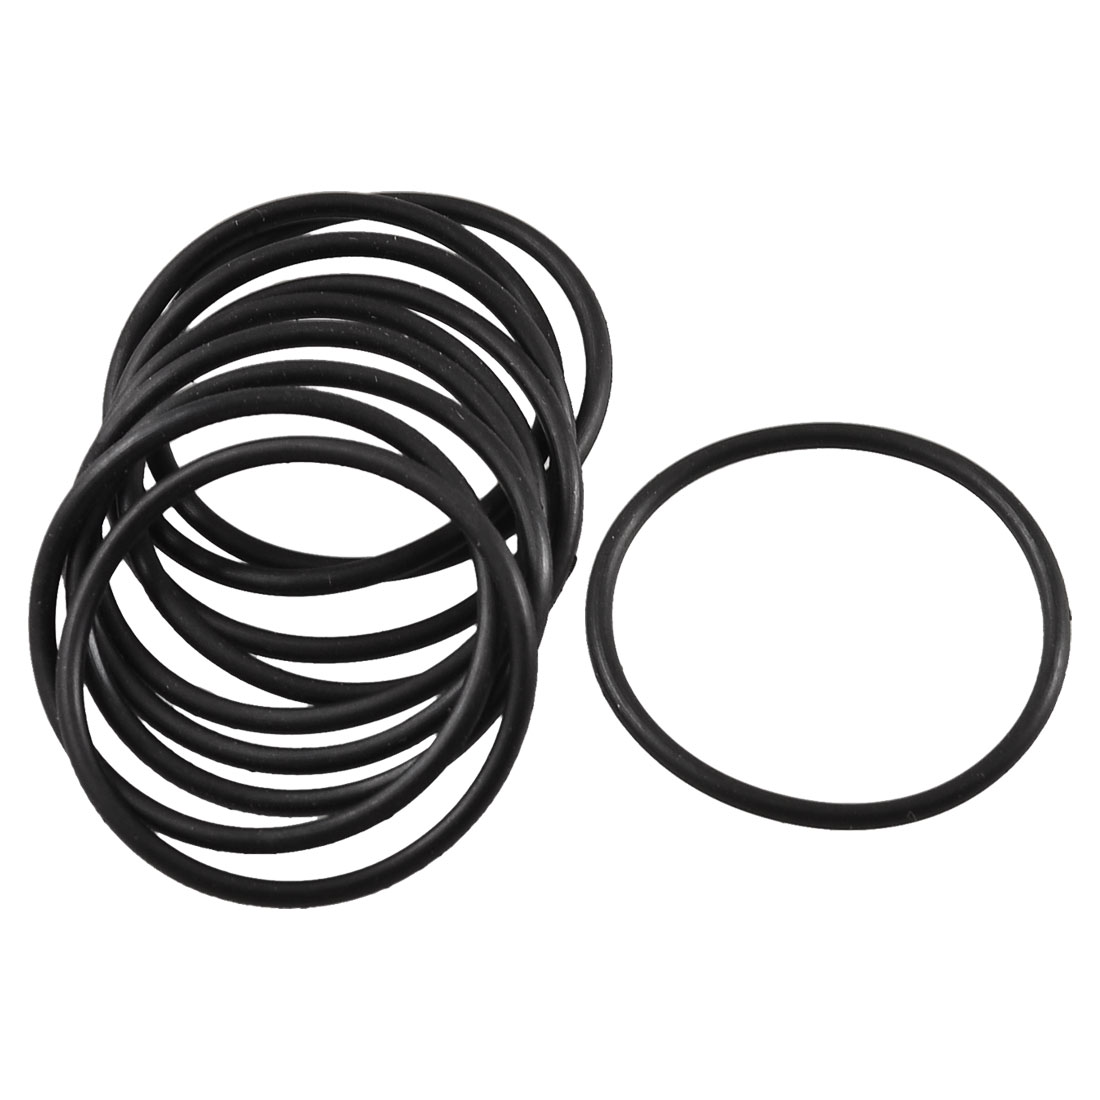 10 Pcs Black Rubber Flexible Oil Seal O Ring Gaskets 28mm x 1.8mm